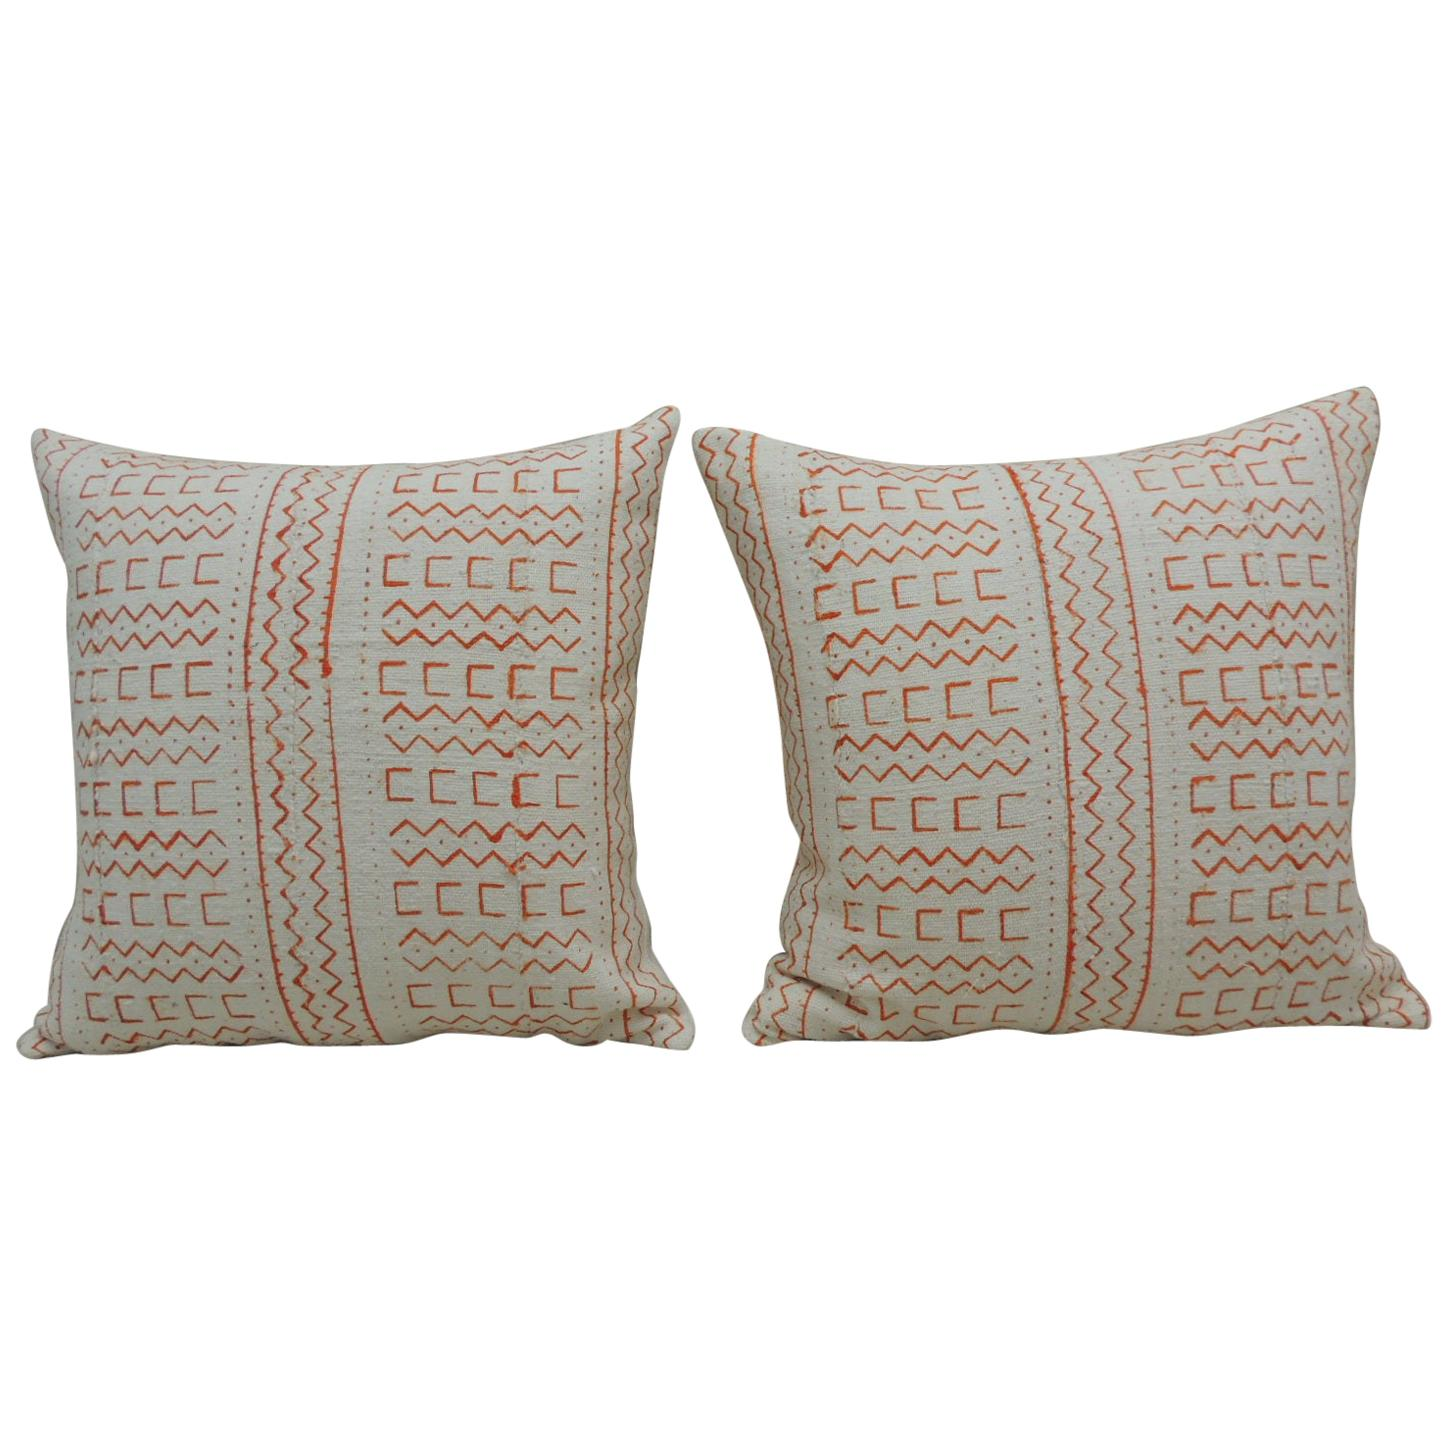 Pair of Vintage Orange and Natural African Mud Cloth Square Decorative Pillows